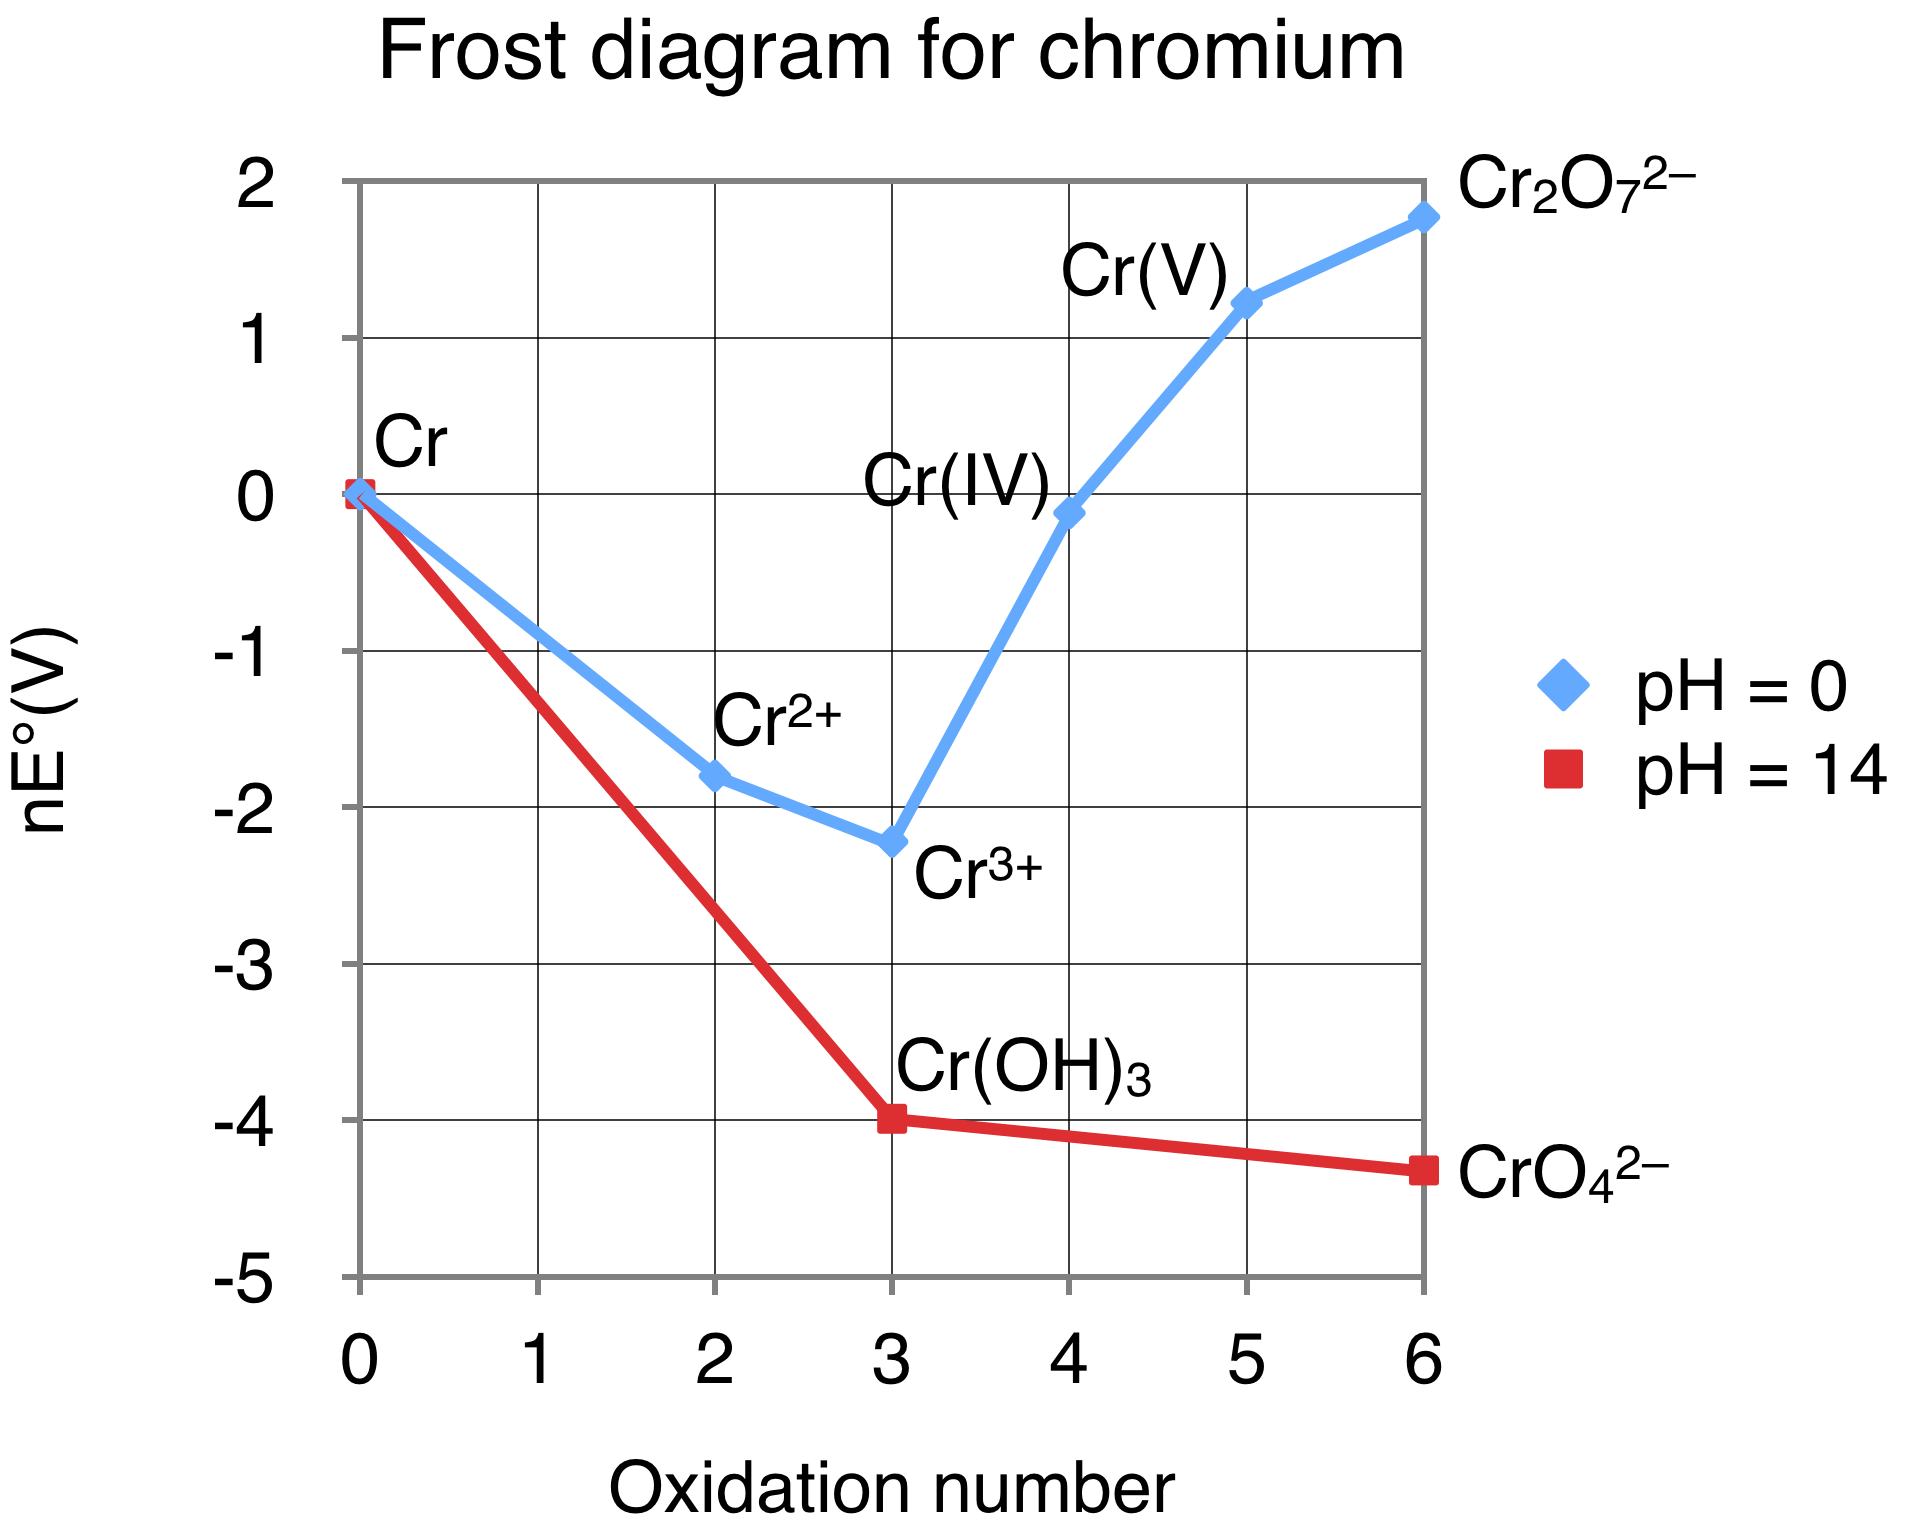 hight resolution of frost diagram chromium